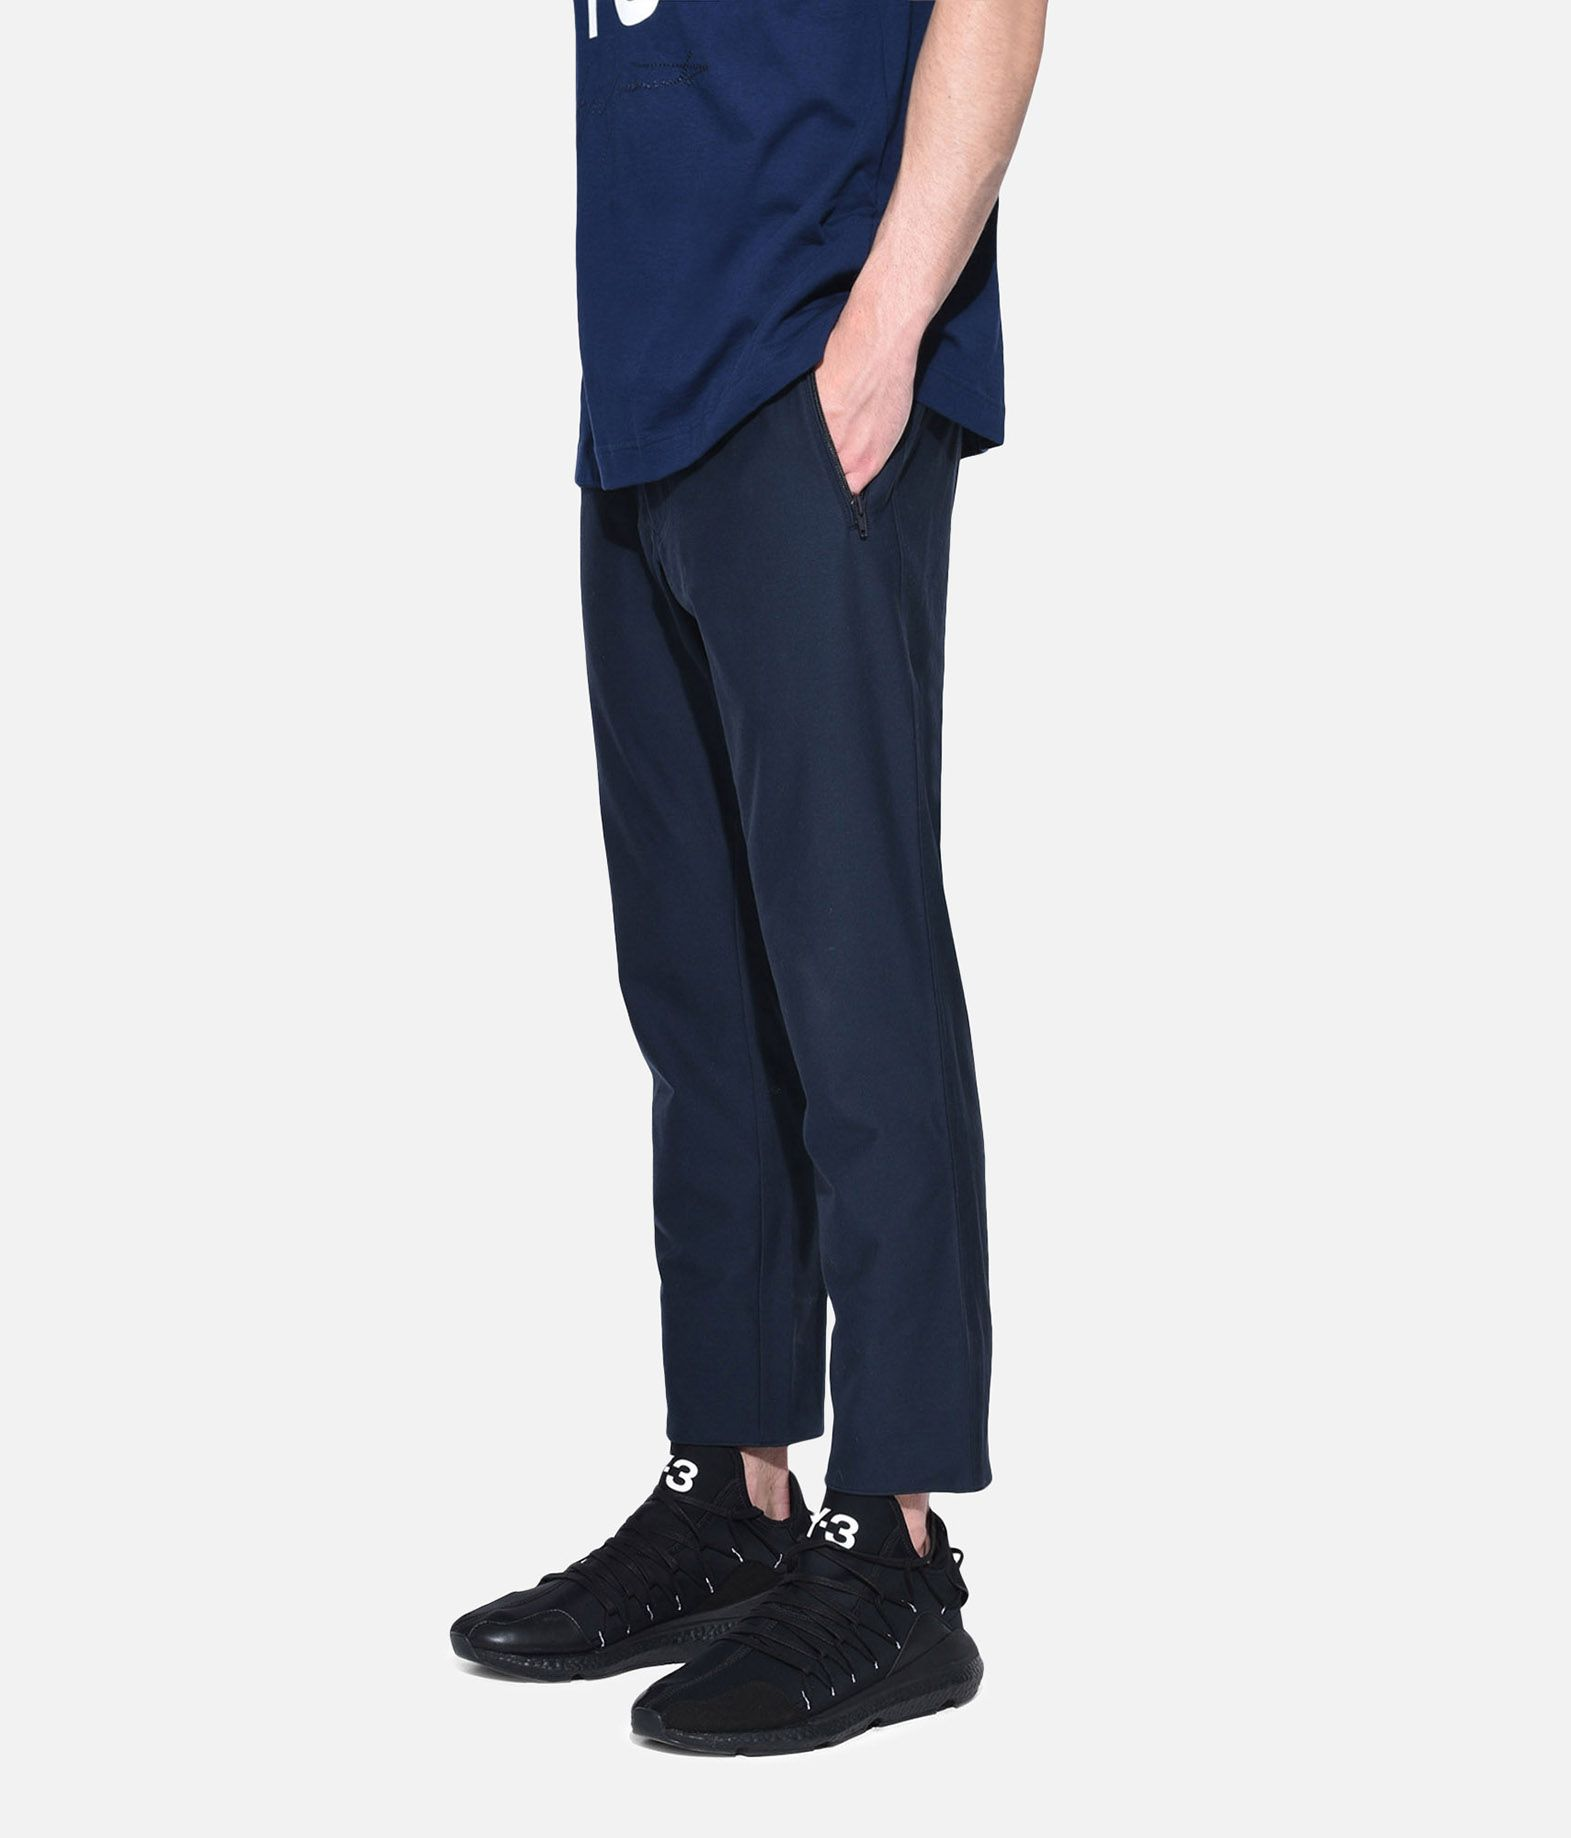 Y-3 Y-3 Twill Cropped Pants Cropped pant Man e